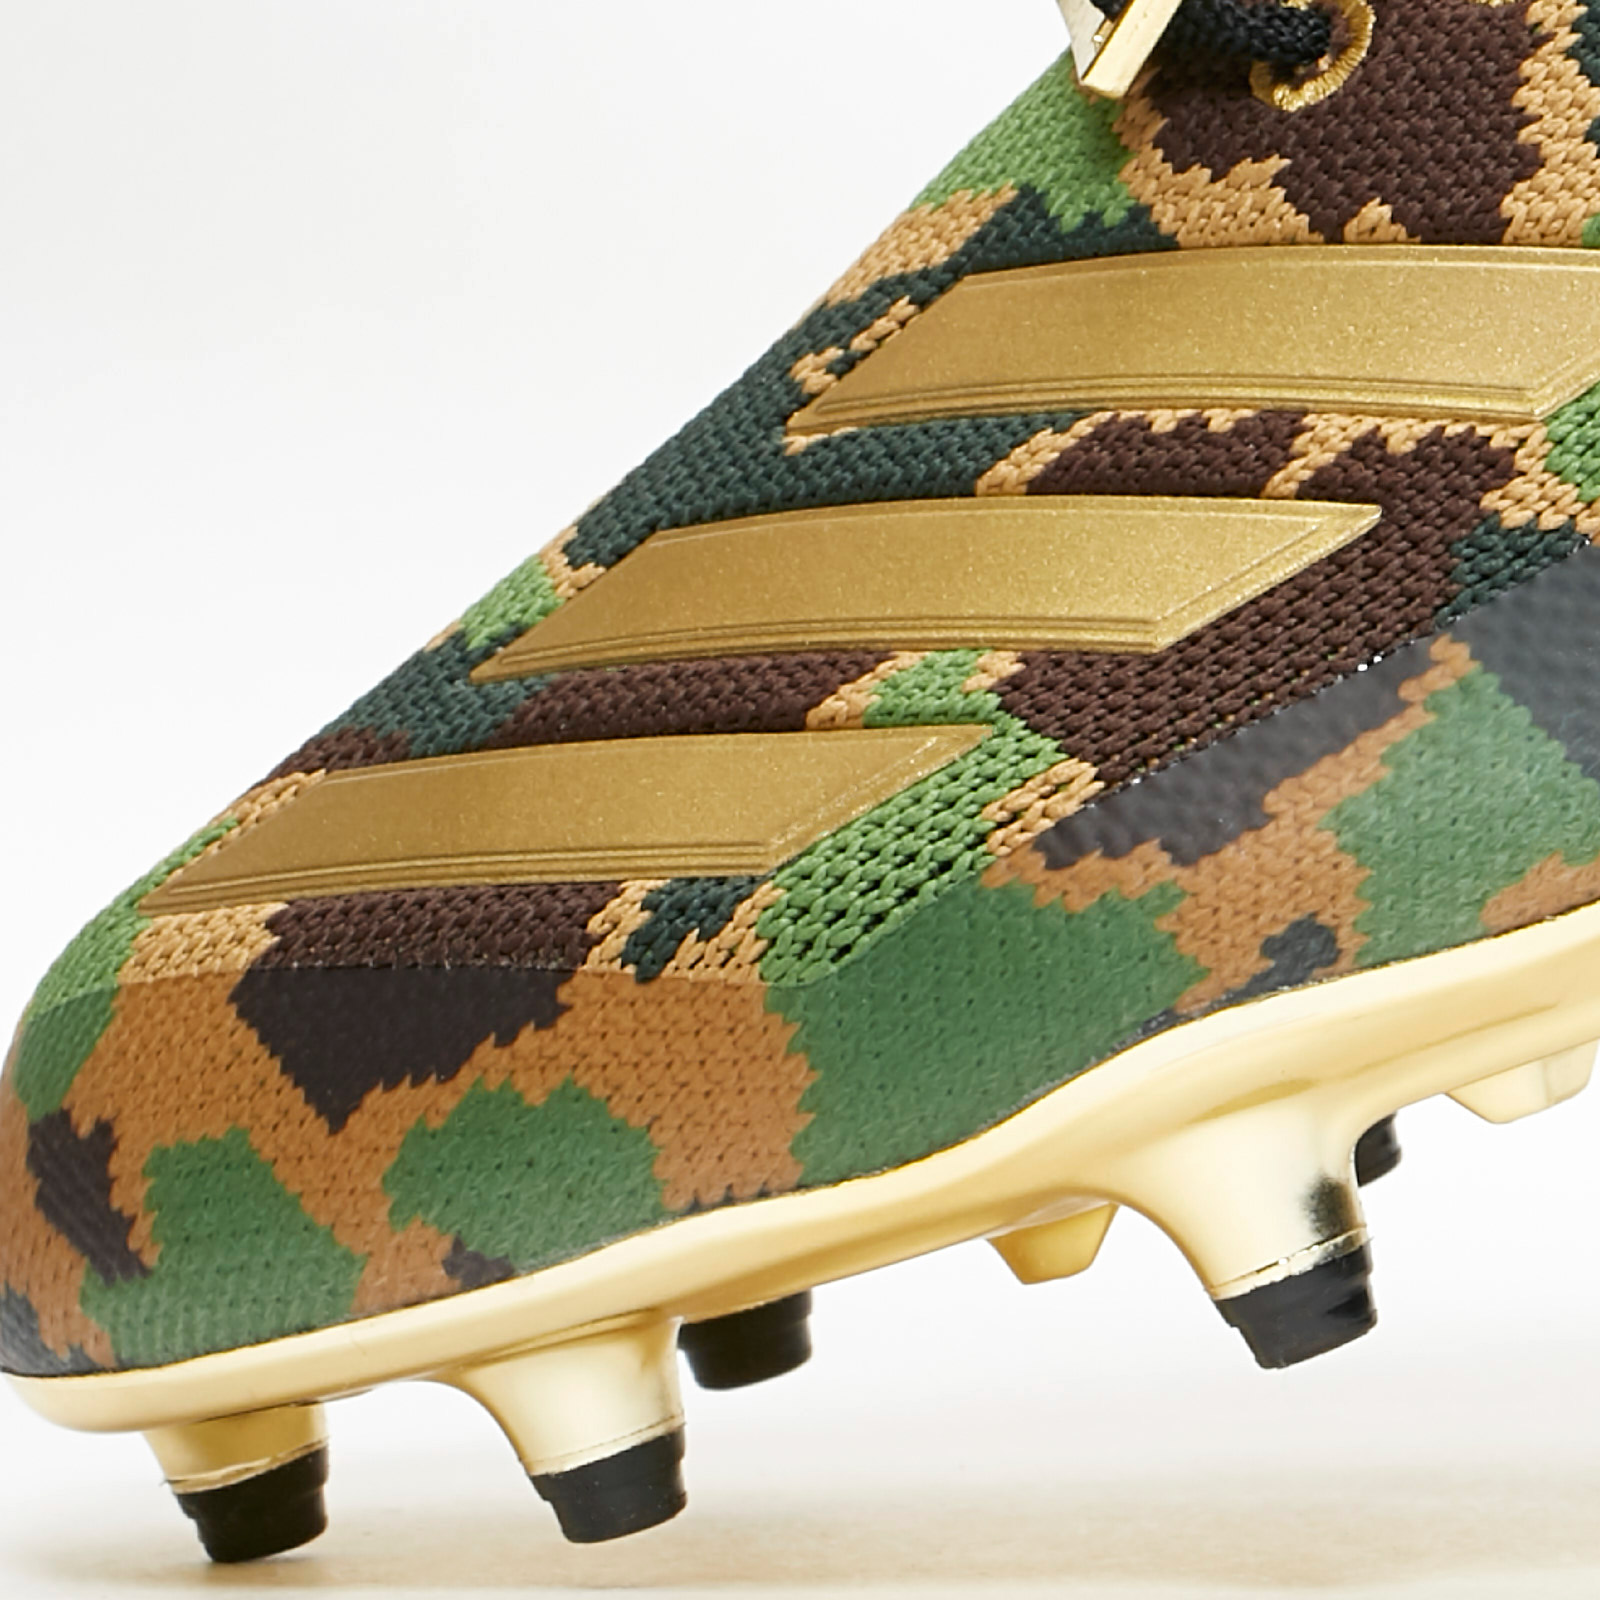 aafe0847a adidas Consortium Cleats x Bape - 7. Close. Previous Next